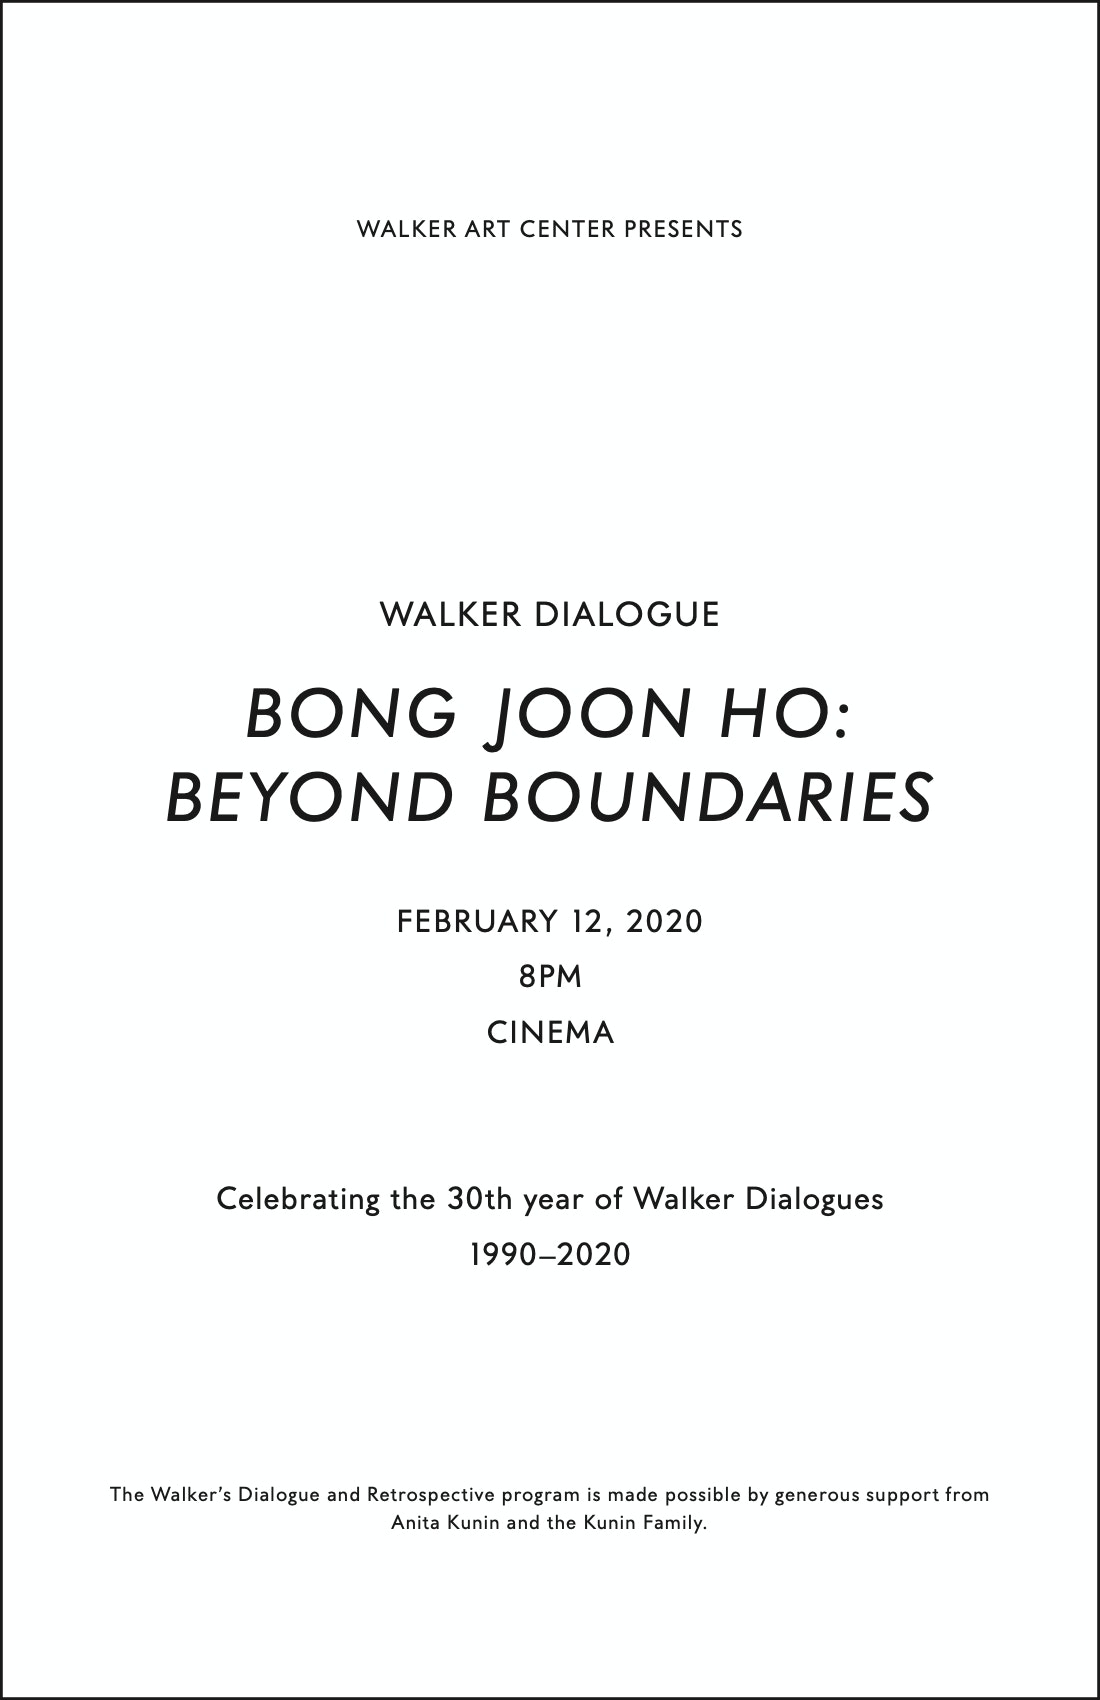 Bong Joon Ho Dialogue brochure cover